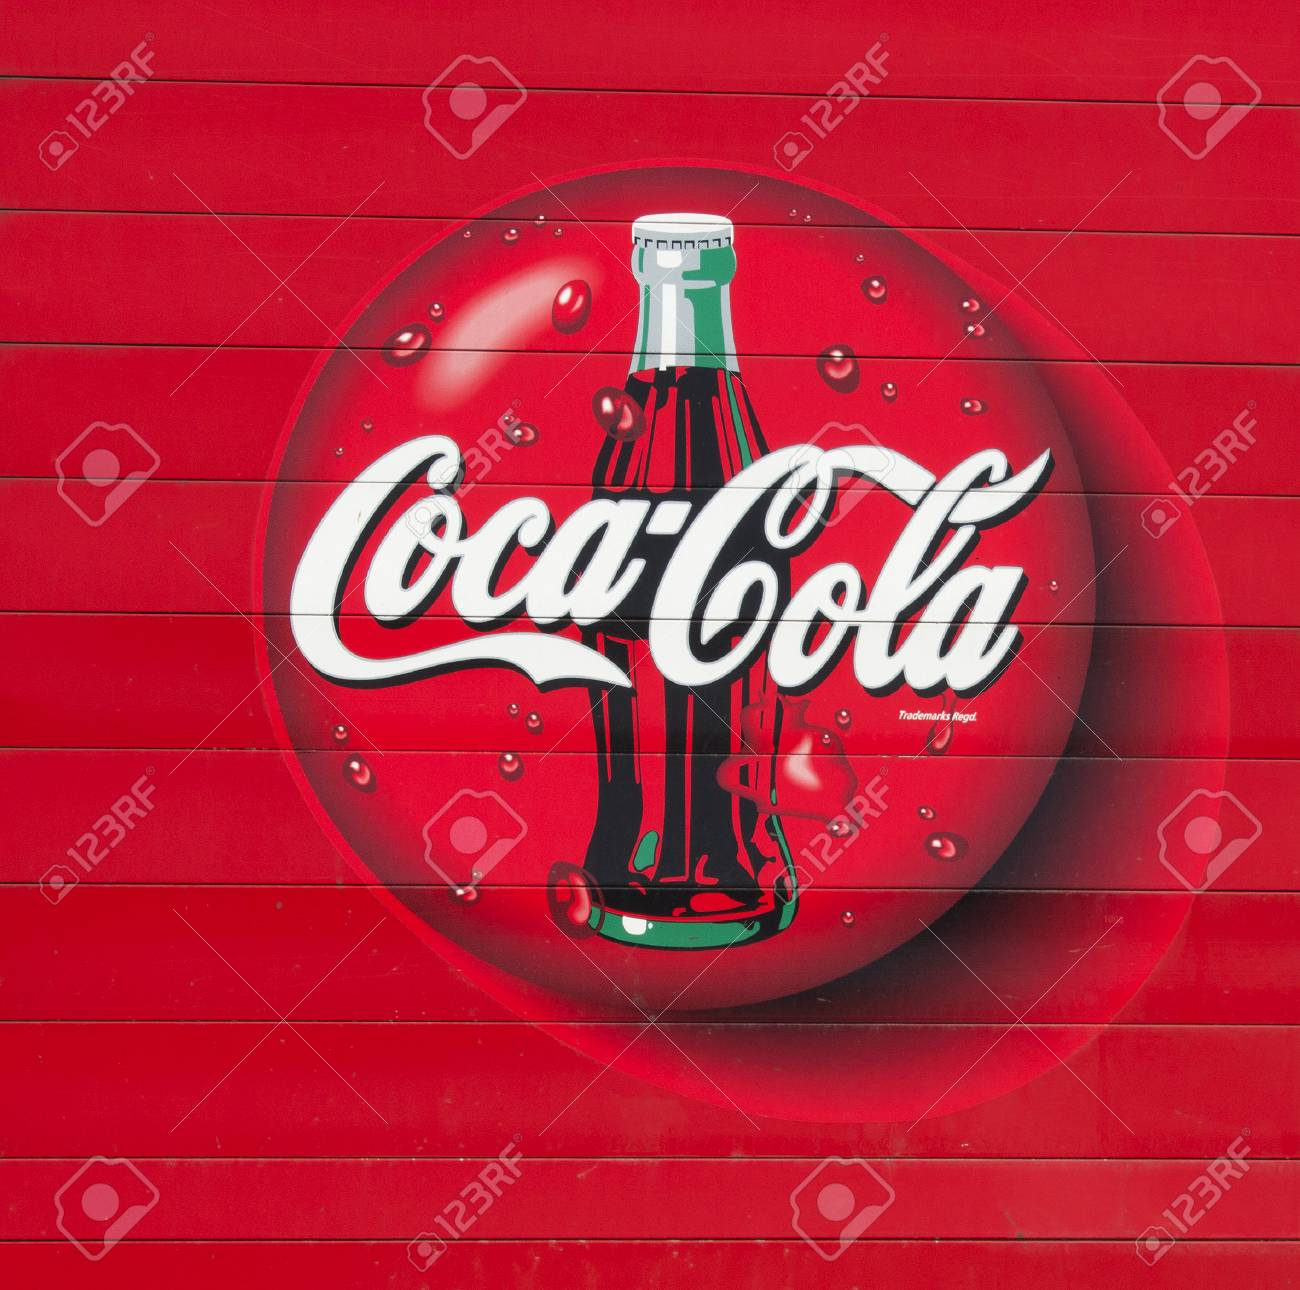 River Fallswisconsin March 14 2014 A Weel Known Coca Cola Stock